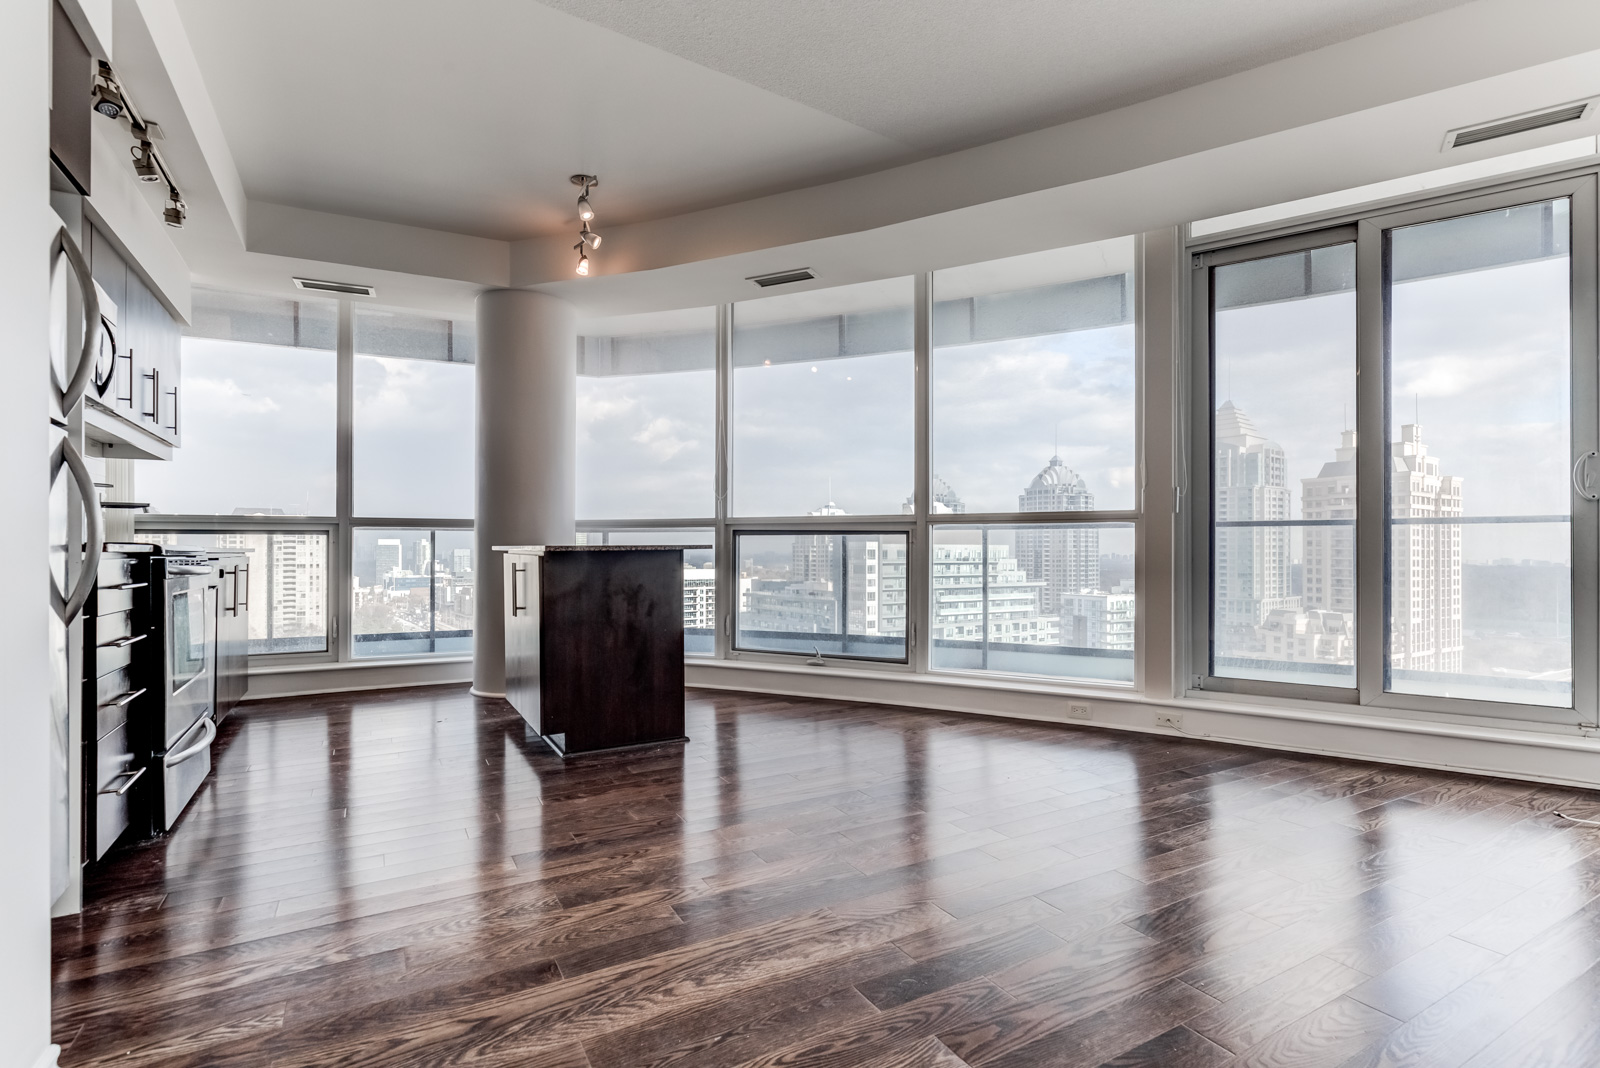 Unit 1106 and its huge floor-to-ceiling windows.